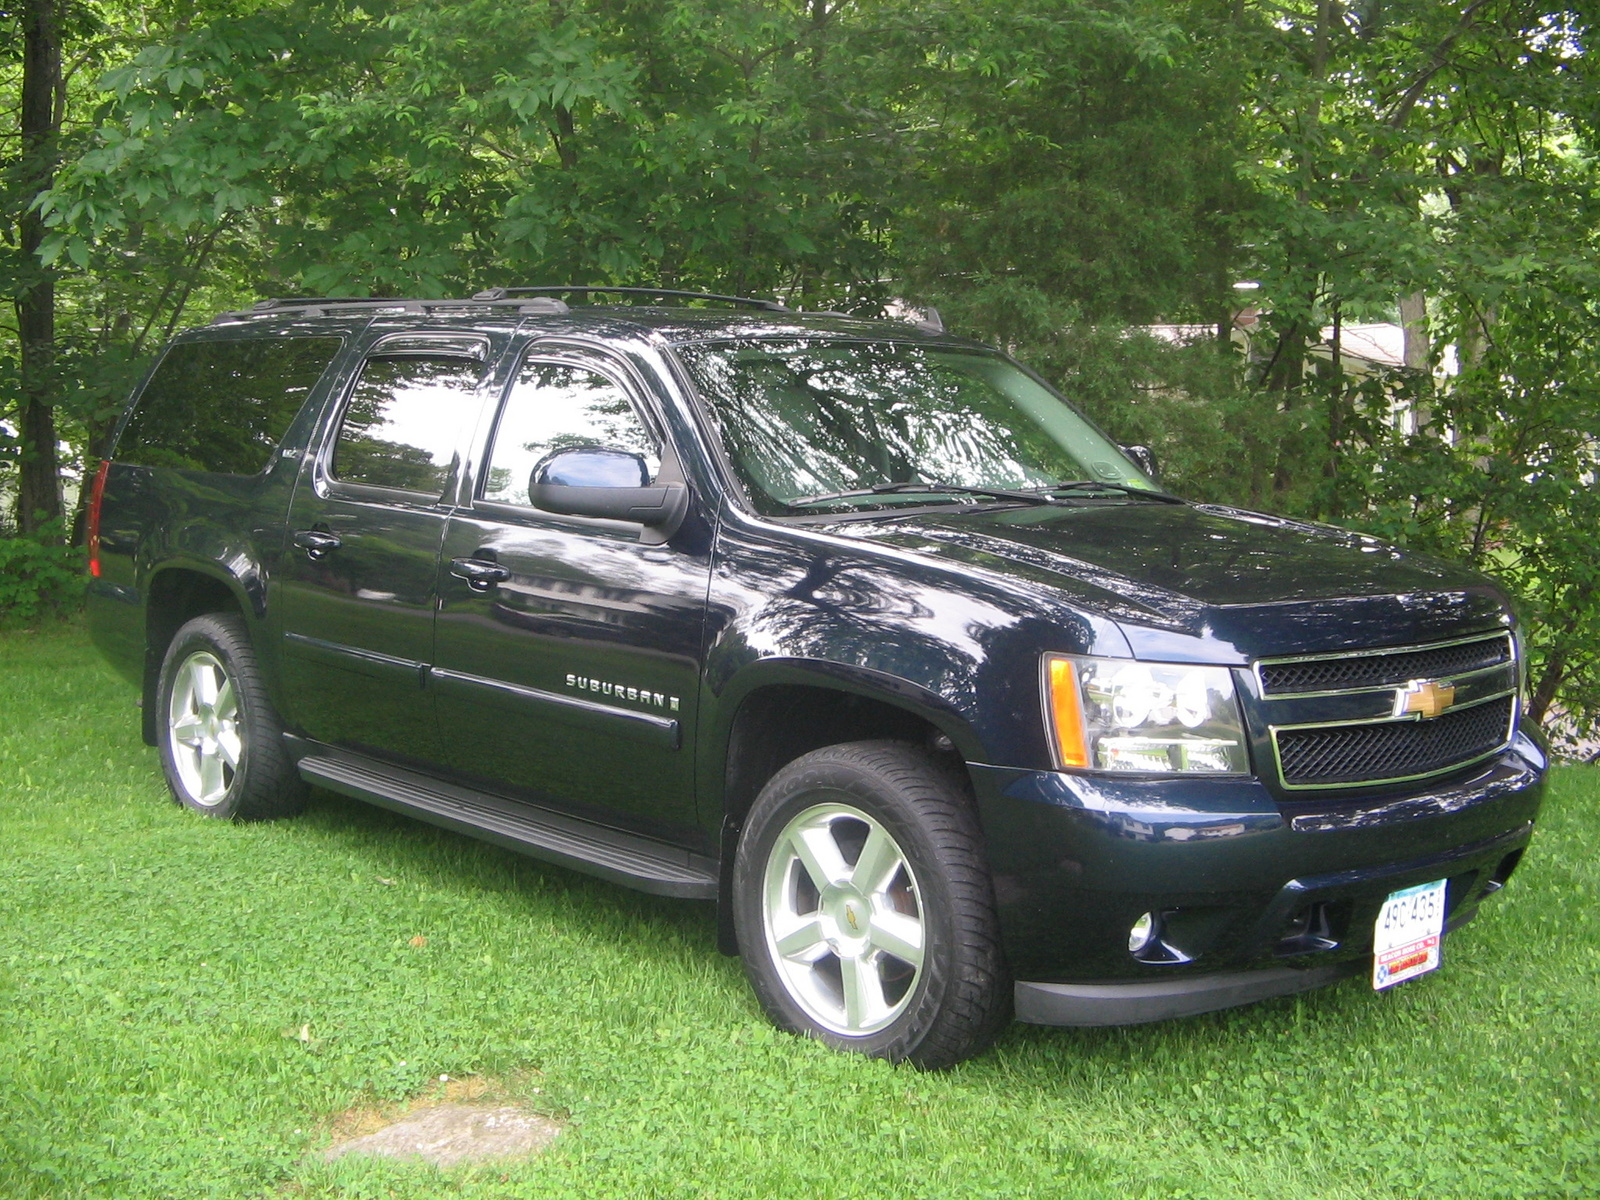 2010 chevrolet suburban ltz 1500 4wd for sale cargurus autos post. Black Bedroom Furniture Sets. Home Design Ideas